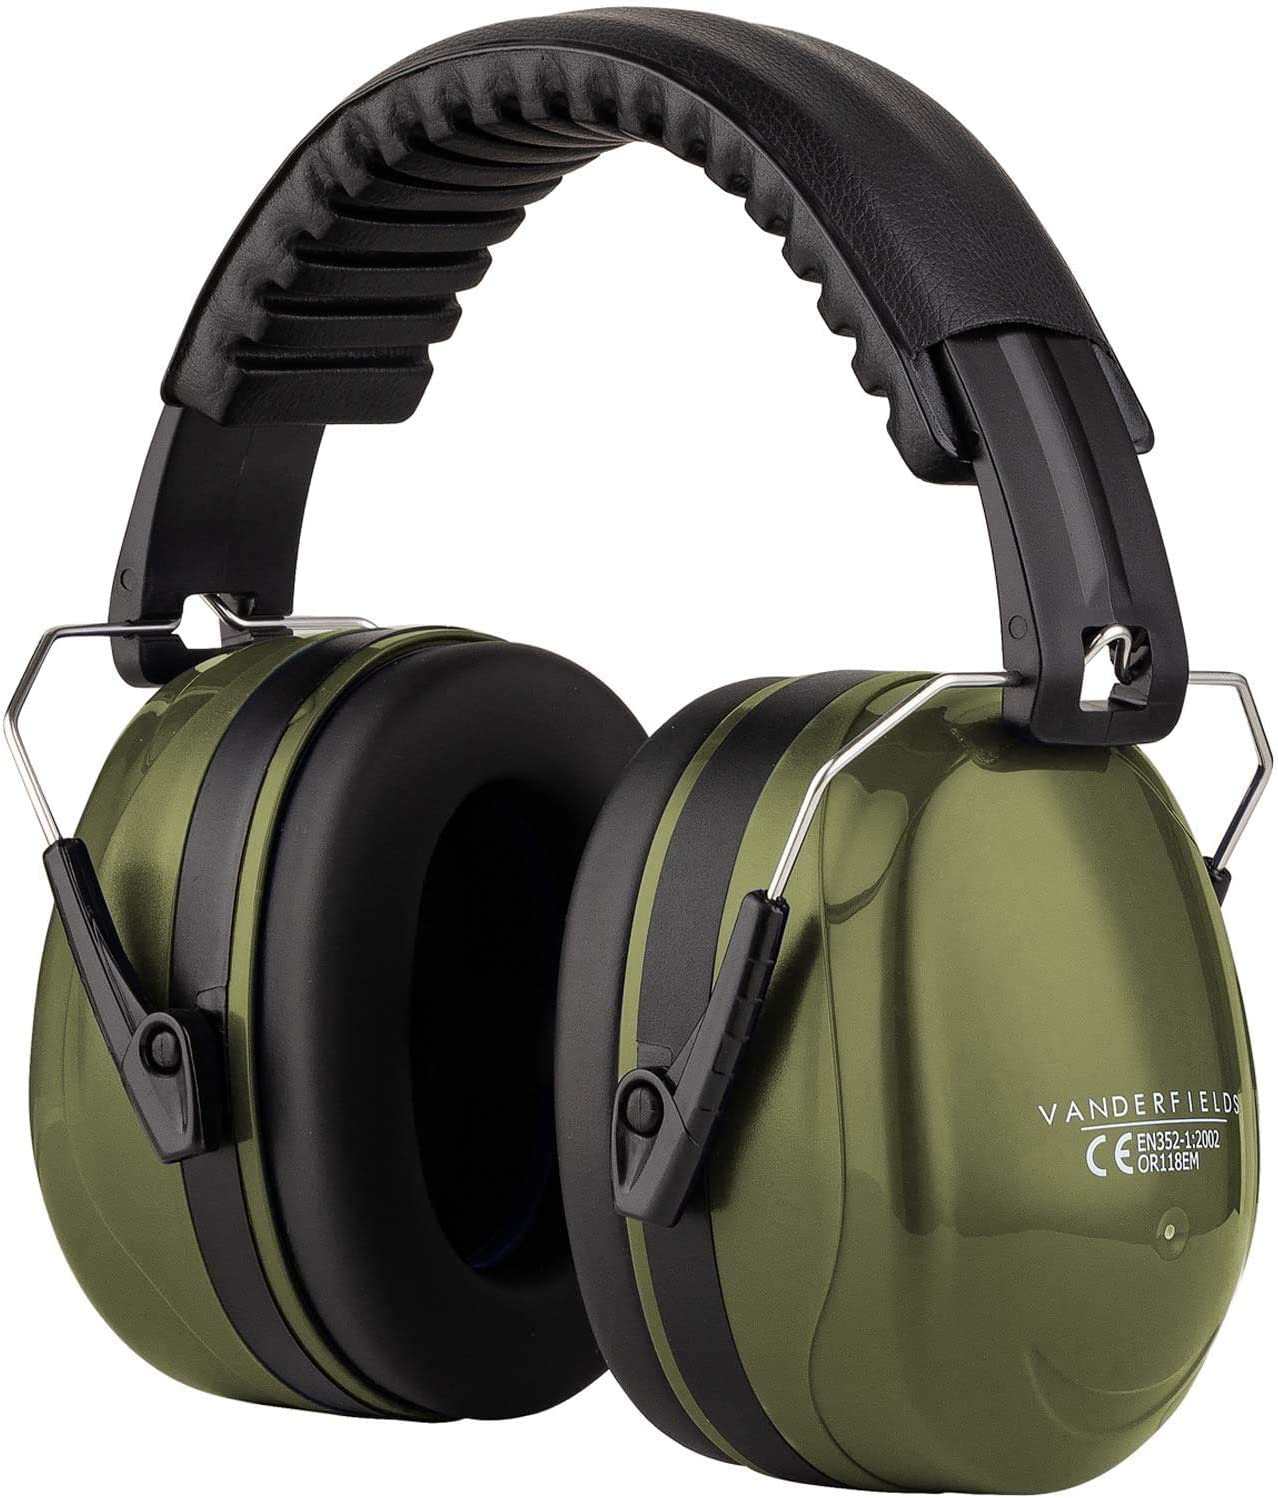 Ear Defenders Adult - Foldable Hearing Protection Ear Muffs Noise Cancelling - Perfect for DIYm Working, Shooting, Gardening - Adjustable Headband for Adults Men Women - 2 Years Warranty - Green - -